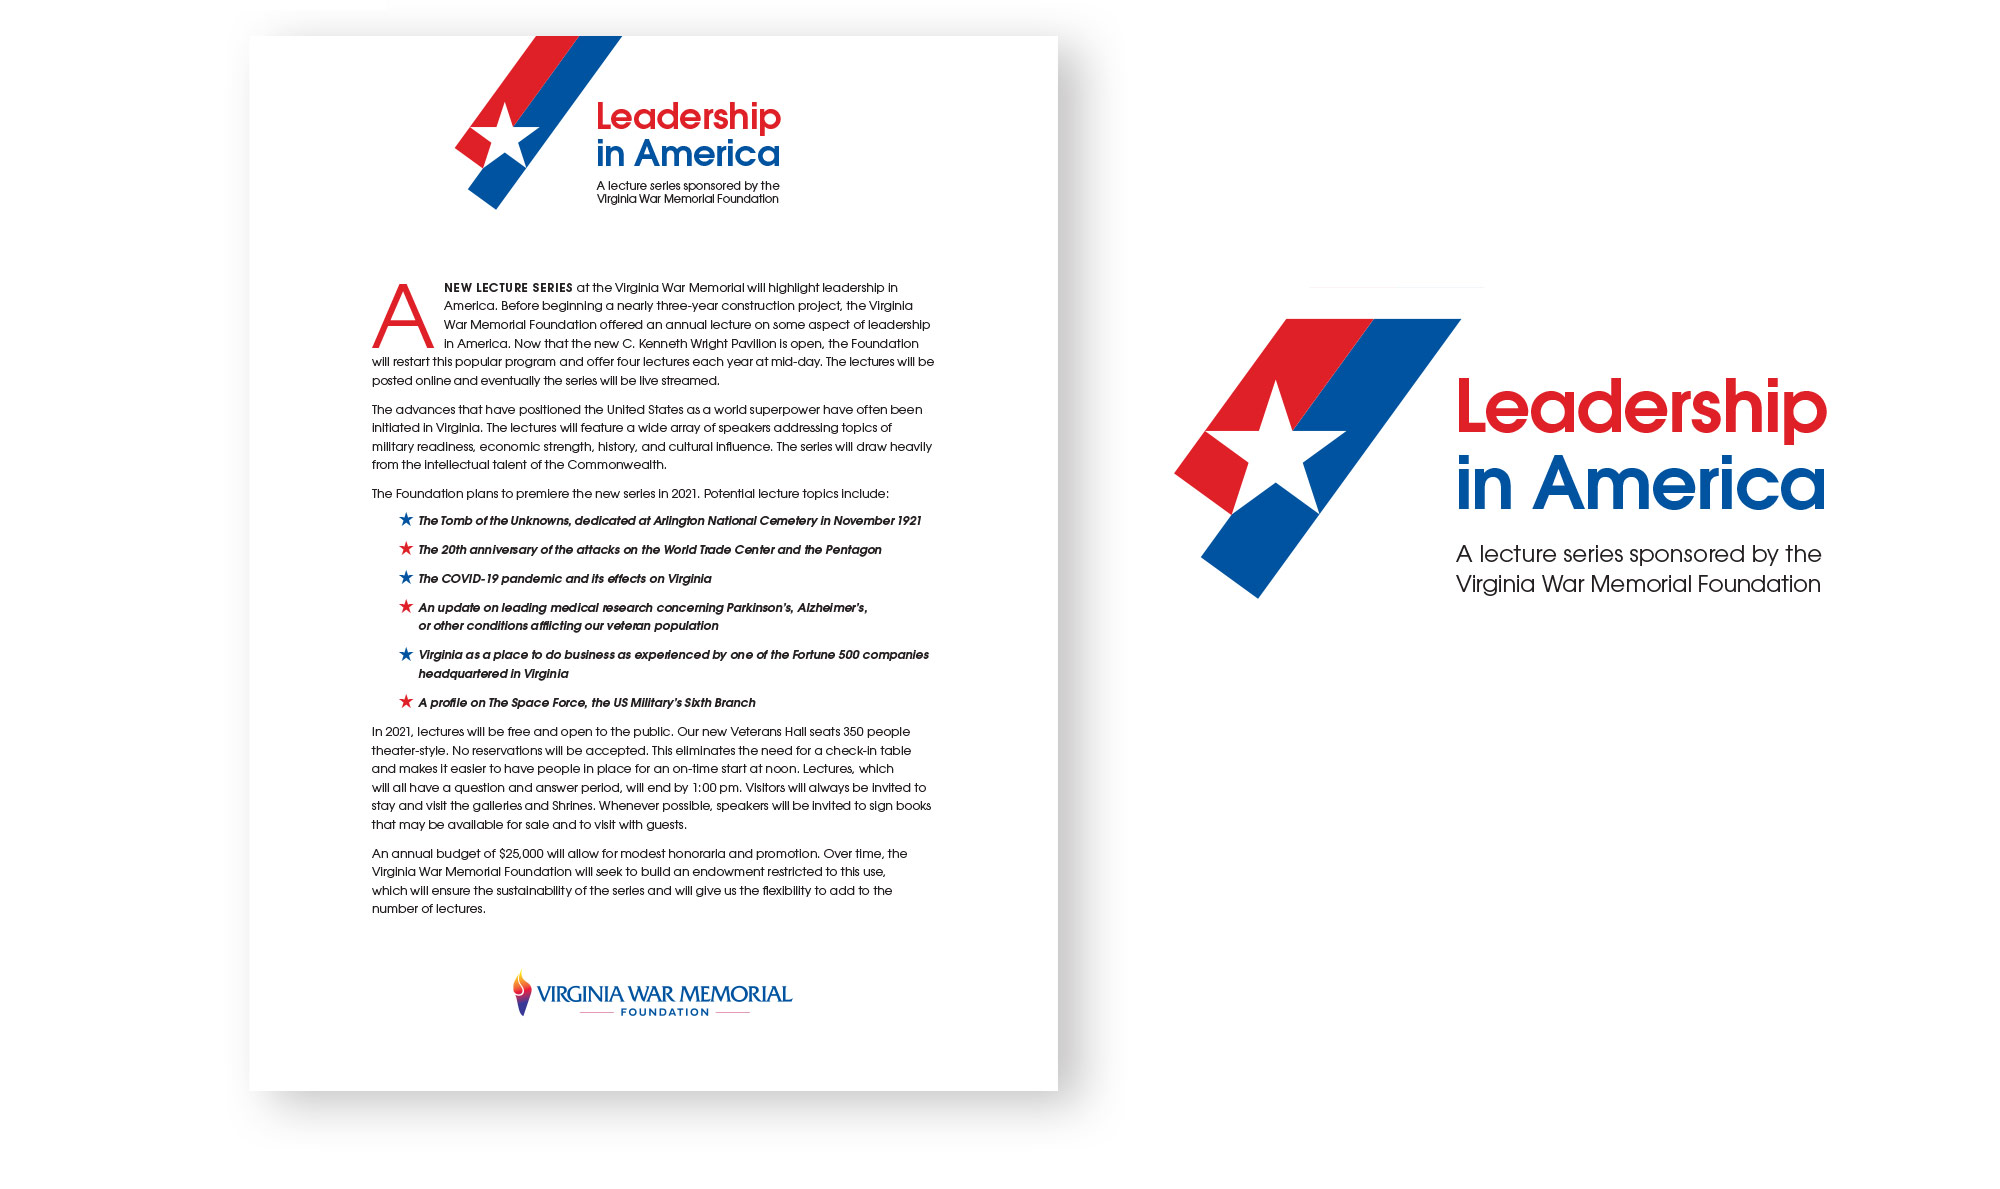 Leadership in America logo and letterhead